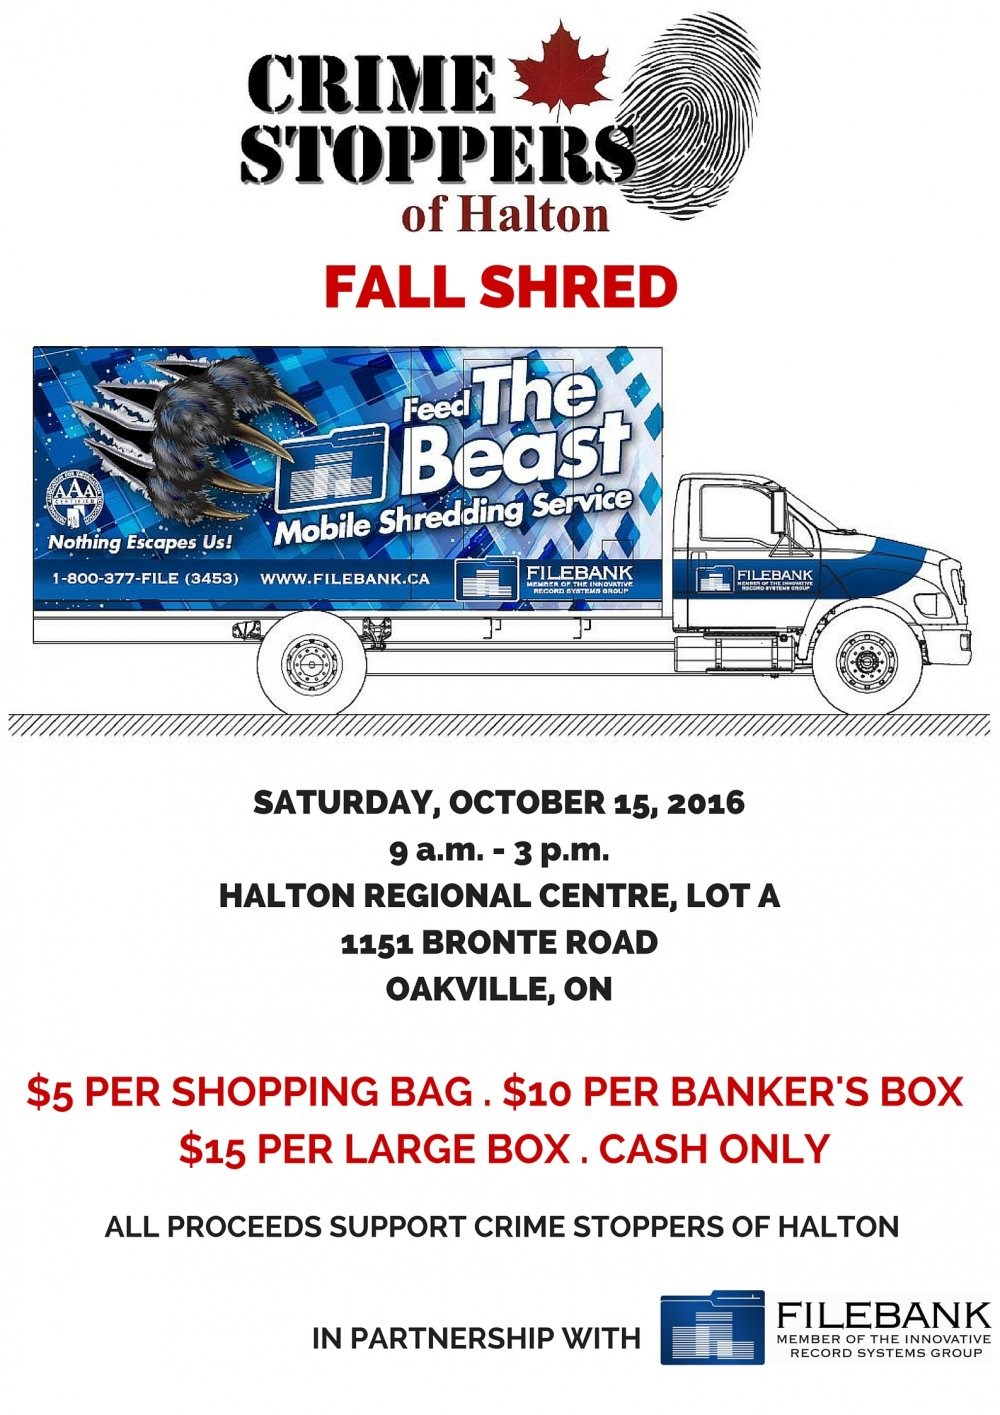 Crime Stoppers of Halton Fall Shred